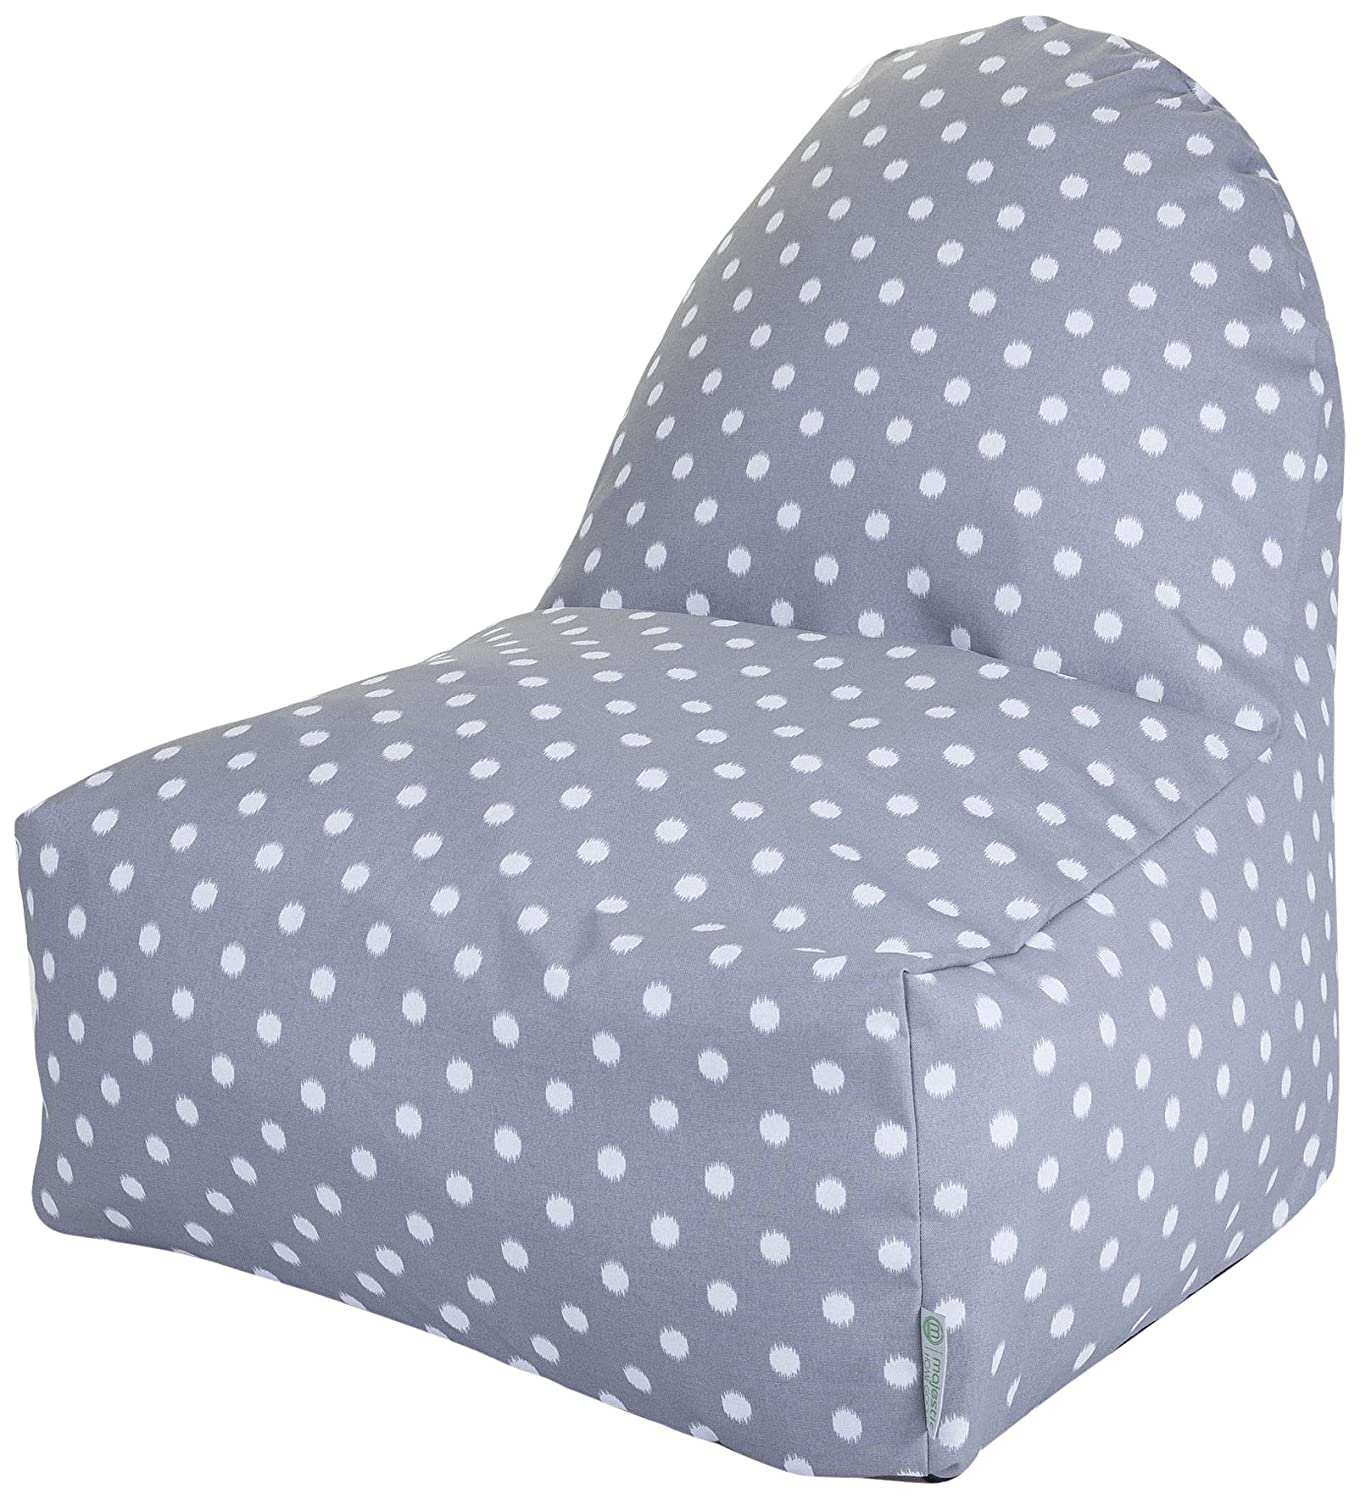 Amazon.com : Majestic Home Goods Kick It Chair, Ikat Dot, Gray : Garden U0026  Outdoor Part 85